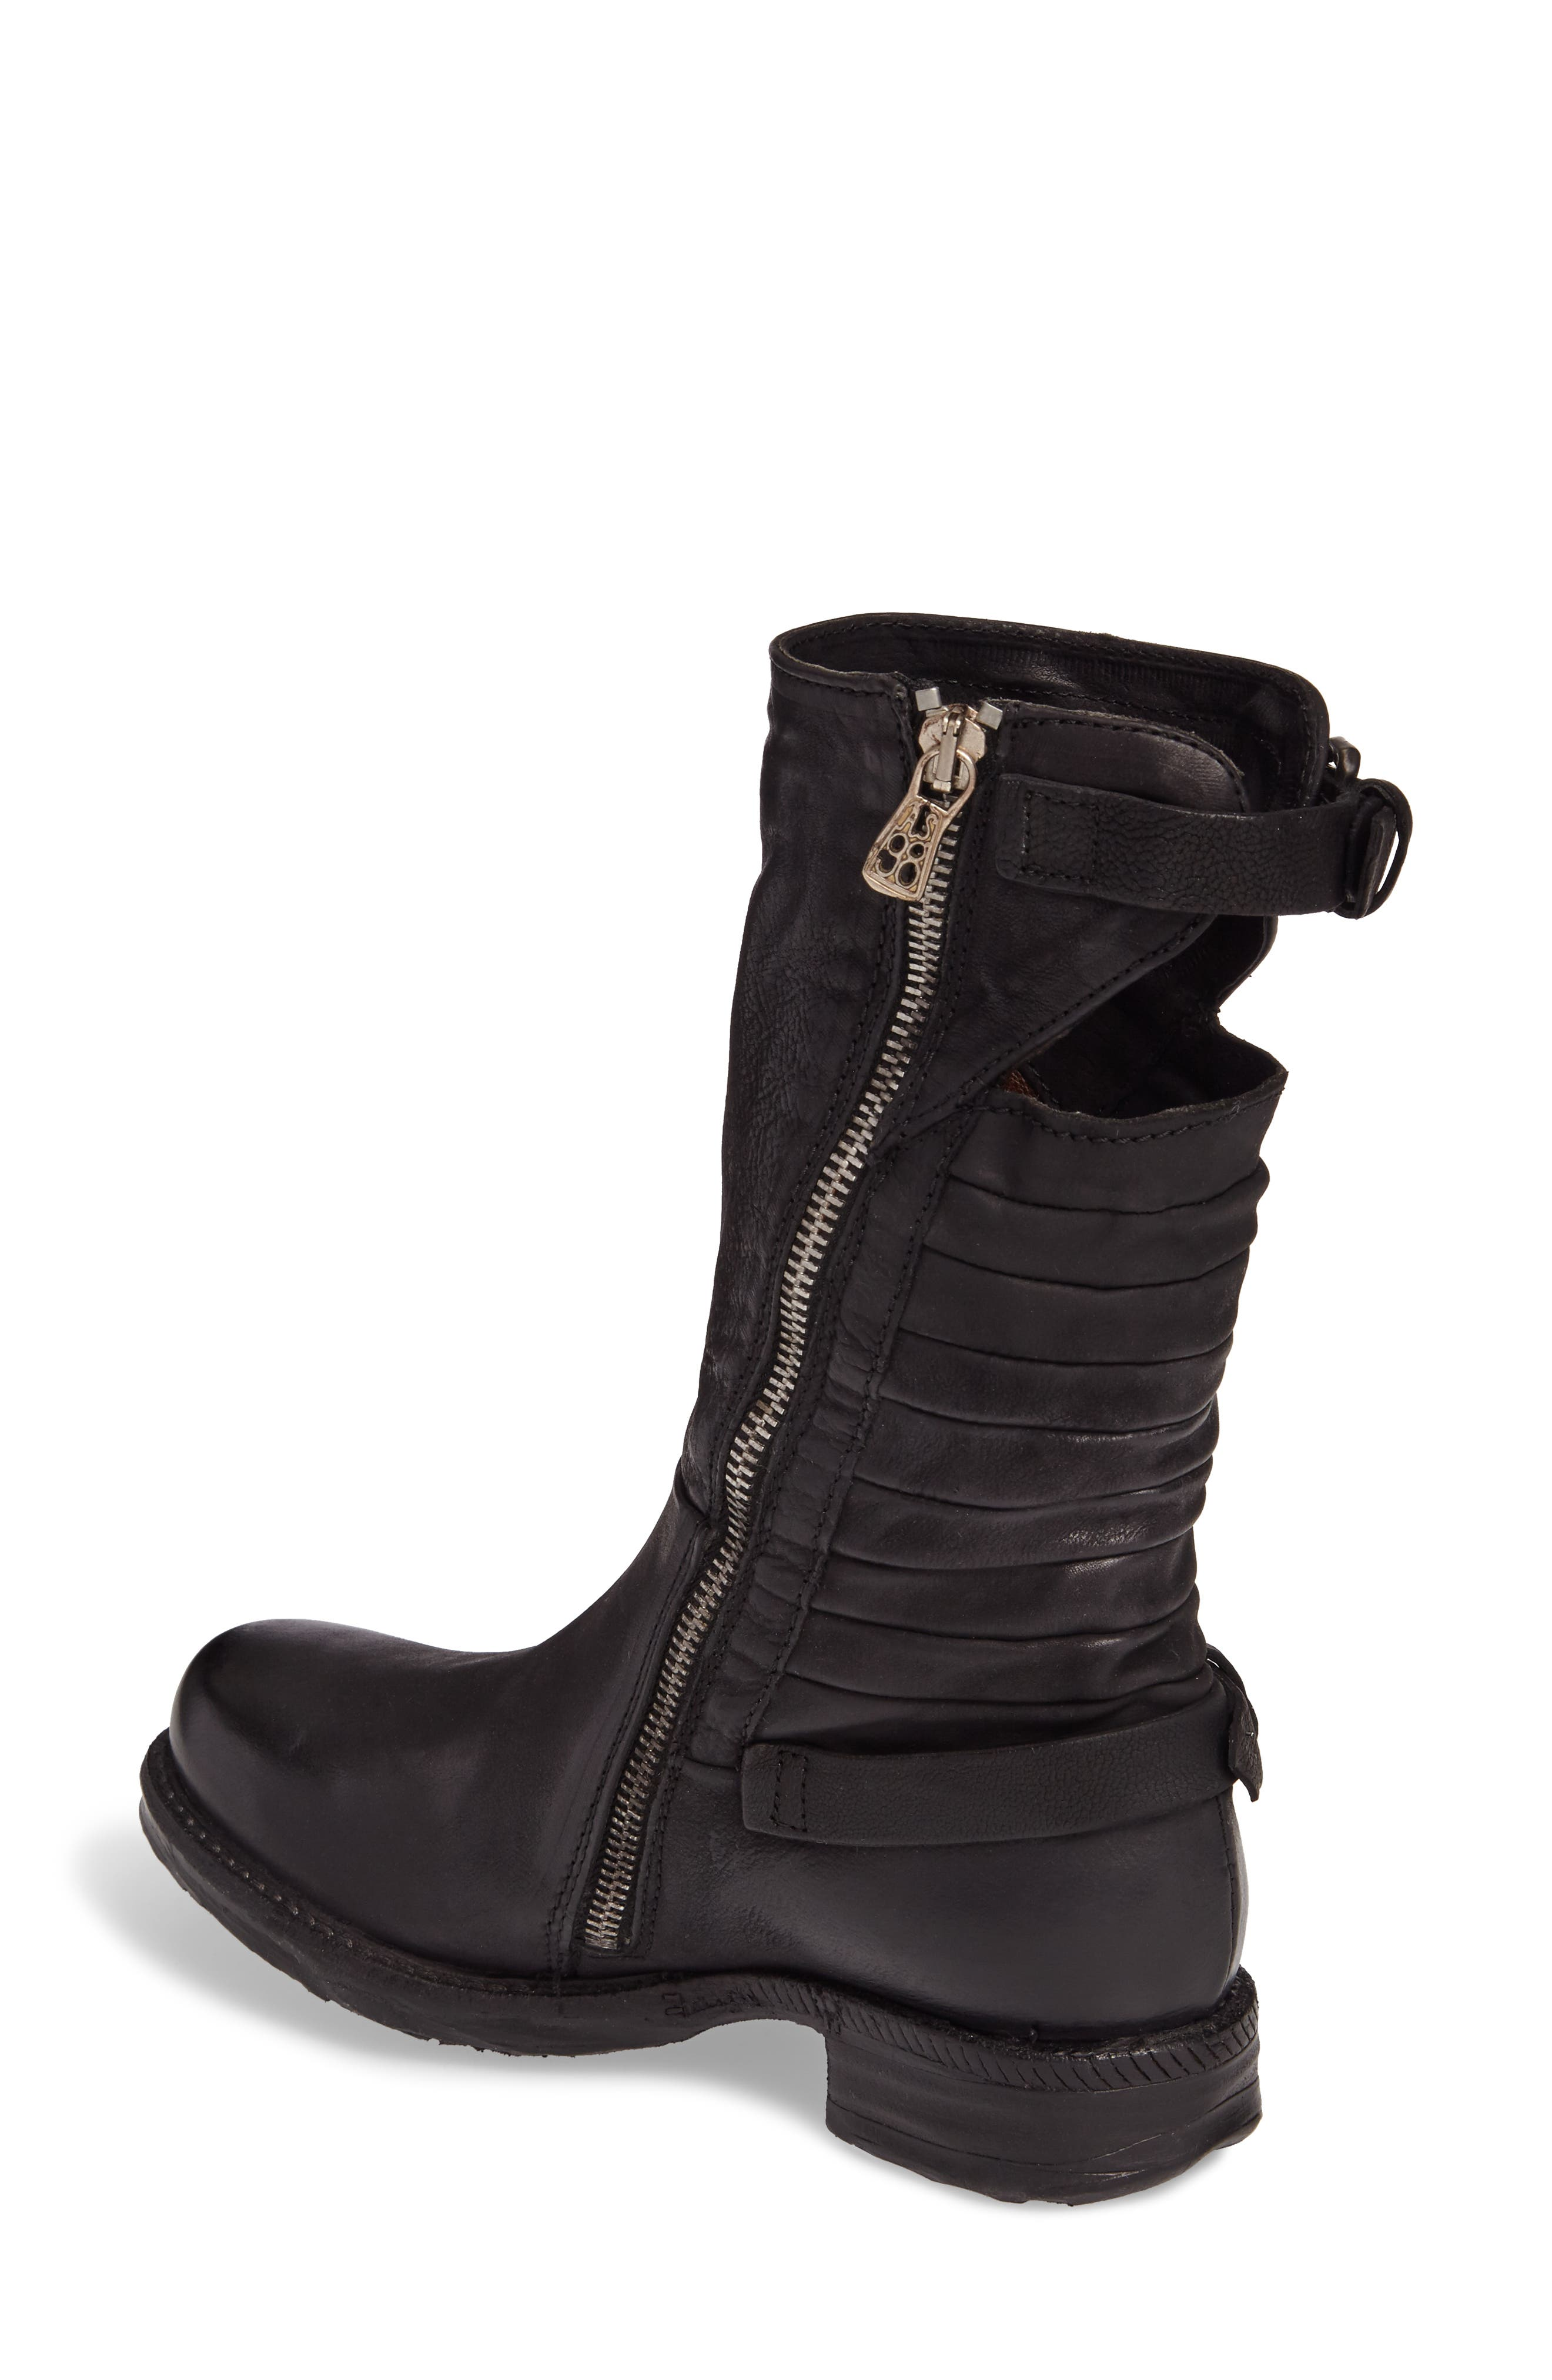 A.S. 98 Serge Boot,                             Alternate thumbnail 2, color,                             001